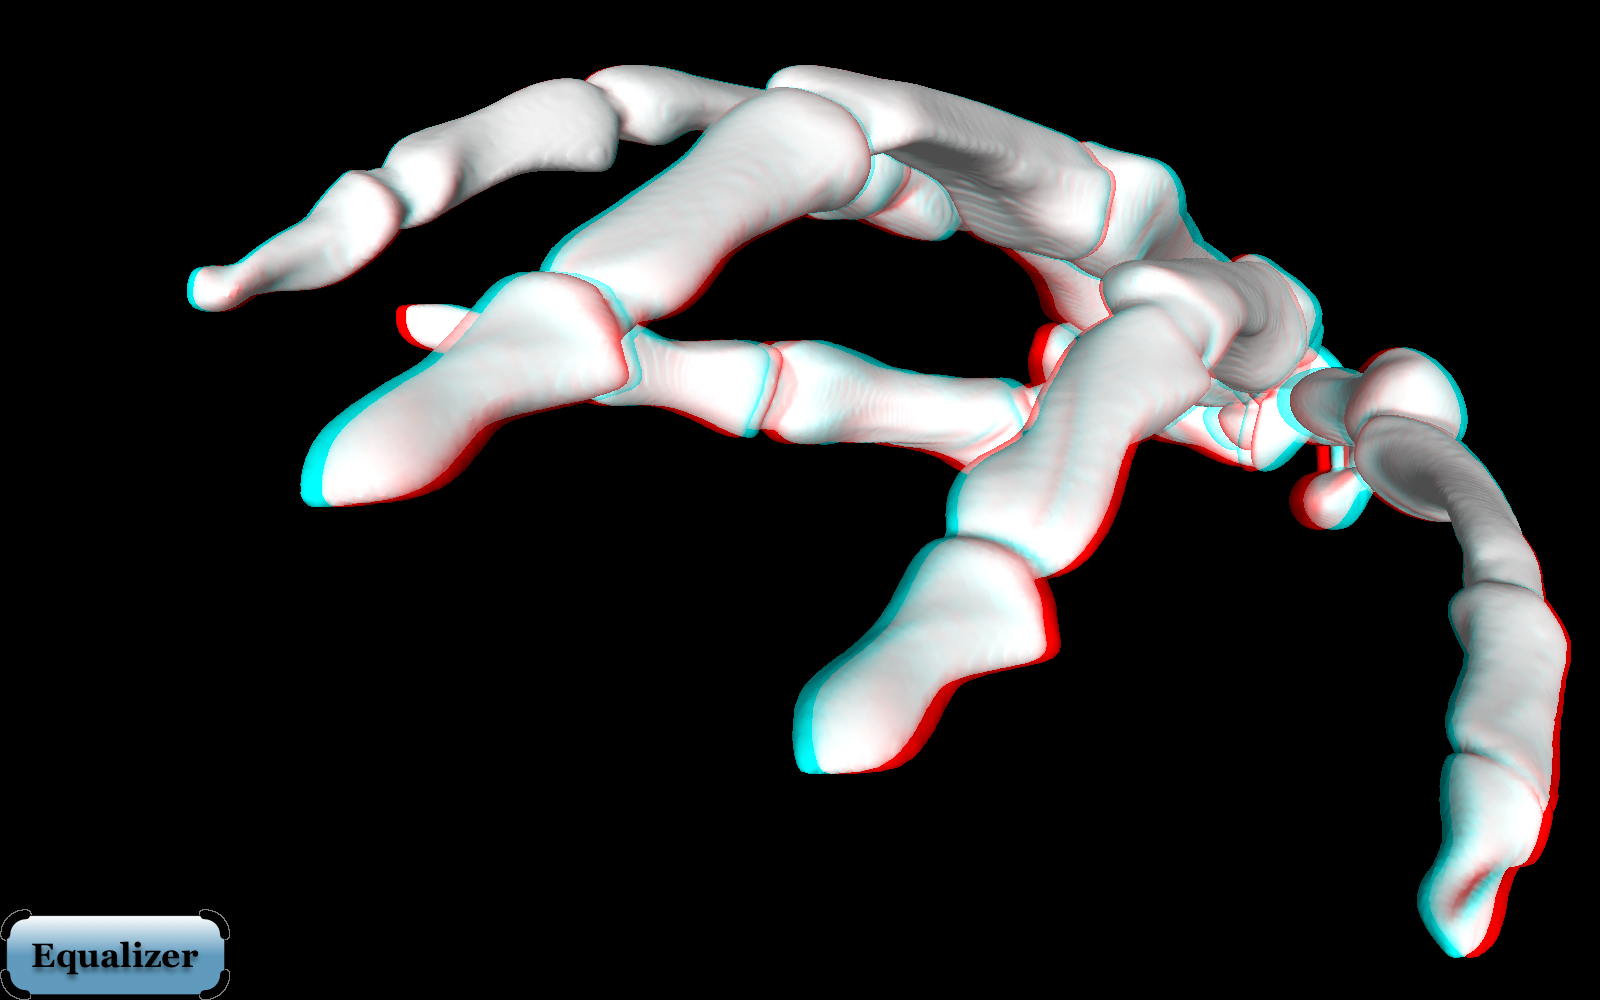 http://s4.picofile.com/file/7747566341/anaglyph.png